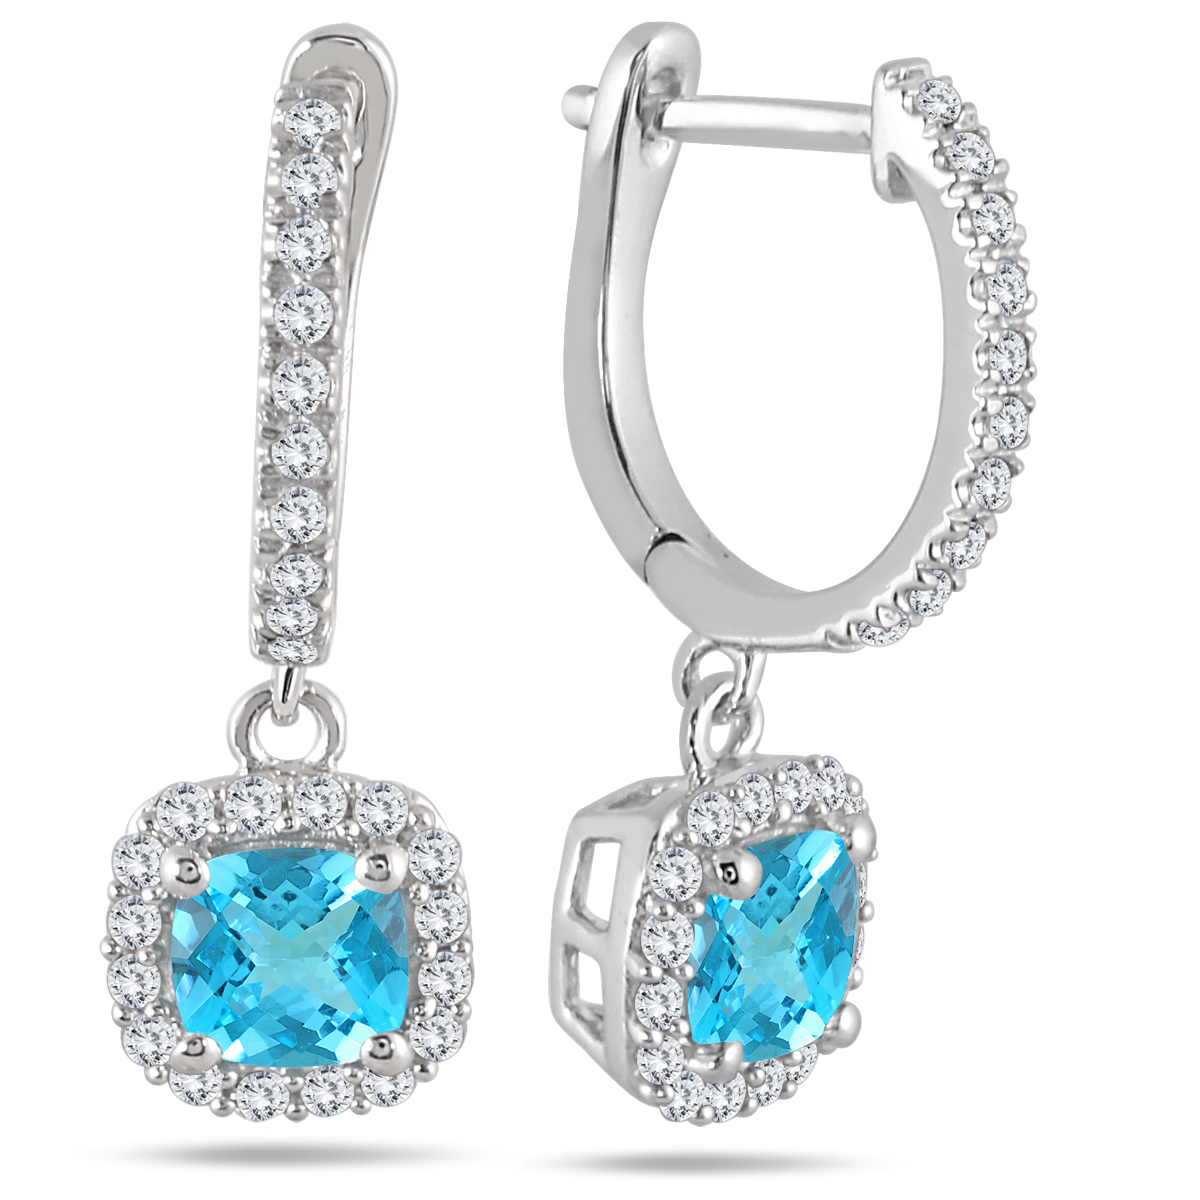 1 Carat Blue Topaz and Diamond Halo Dangle Earrings in 10K White Gold